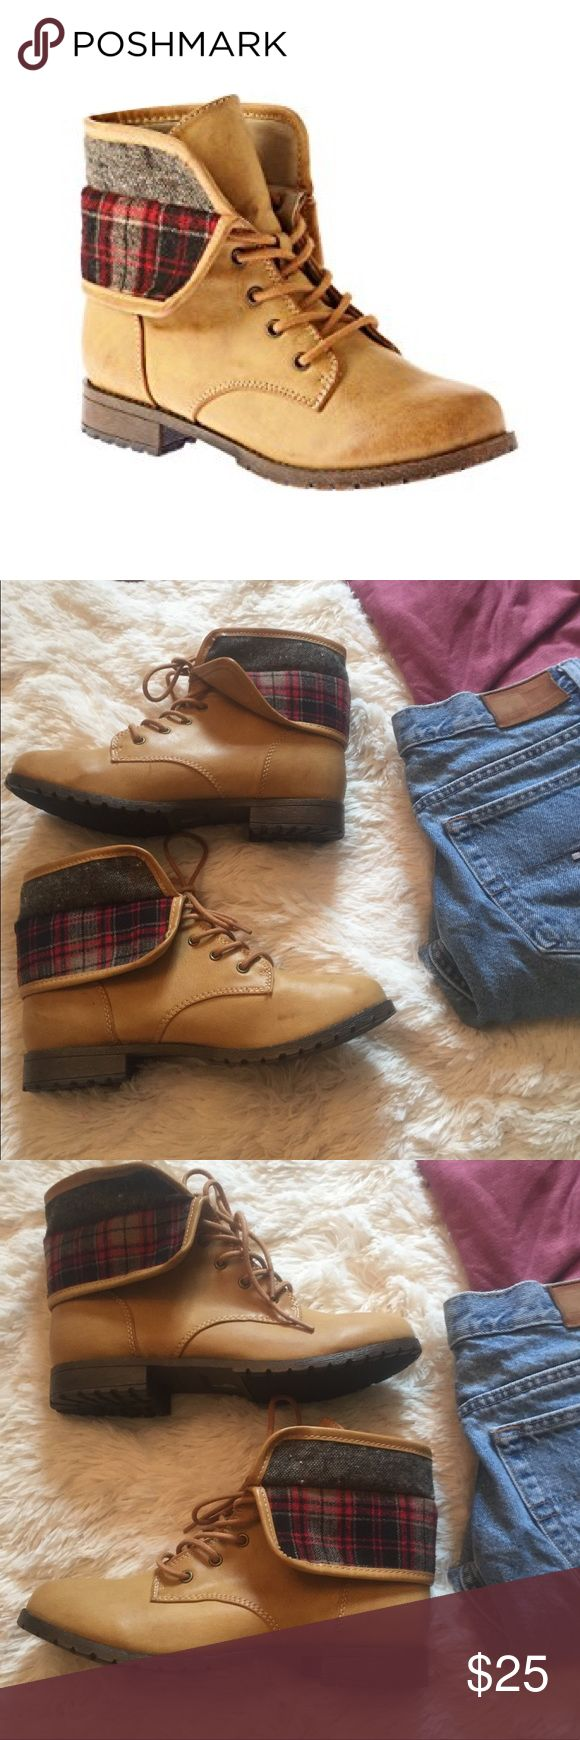 Rampage Jackson plaid accent Boots size 9 Rampage Jackson boots NWOB. Tan with plaid accents. Lace up style. Adorable and perfect for fall! Faux leather. Reasonable offers always accepted. Rampage Shoes Combat & Moto Boots